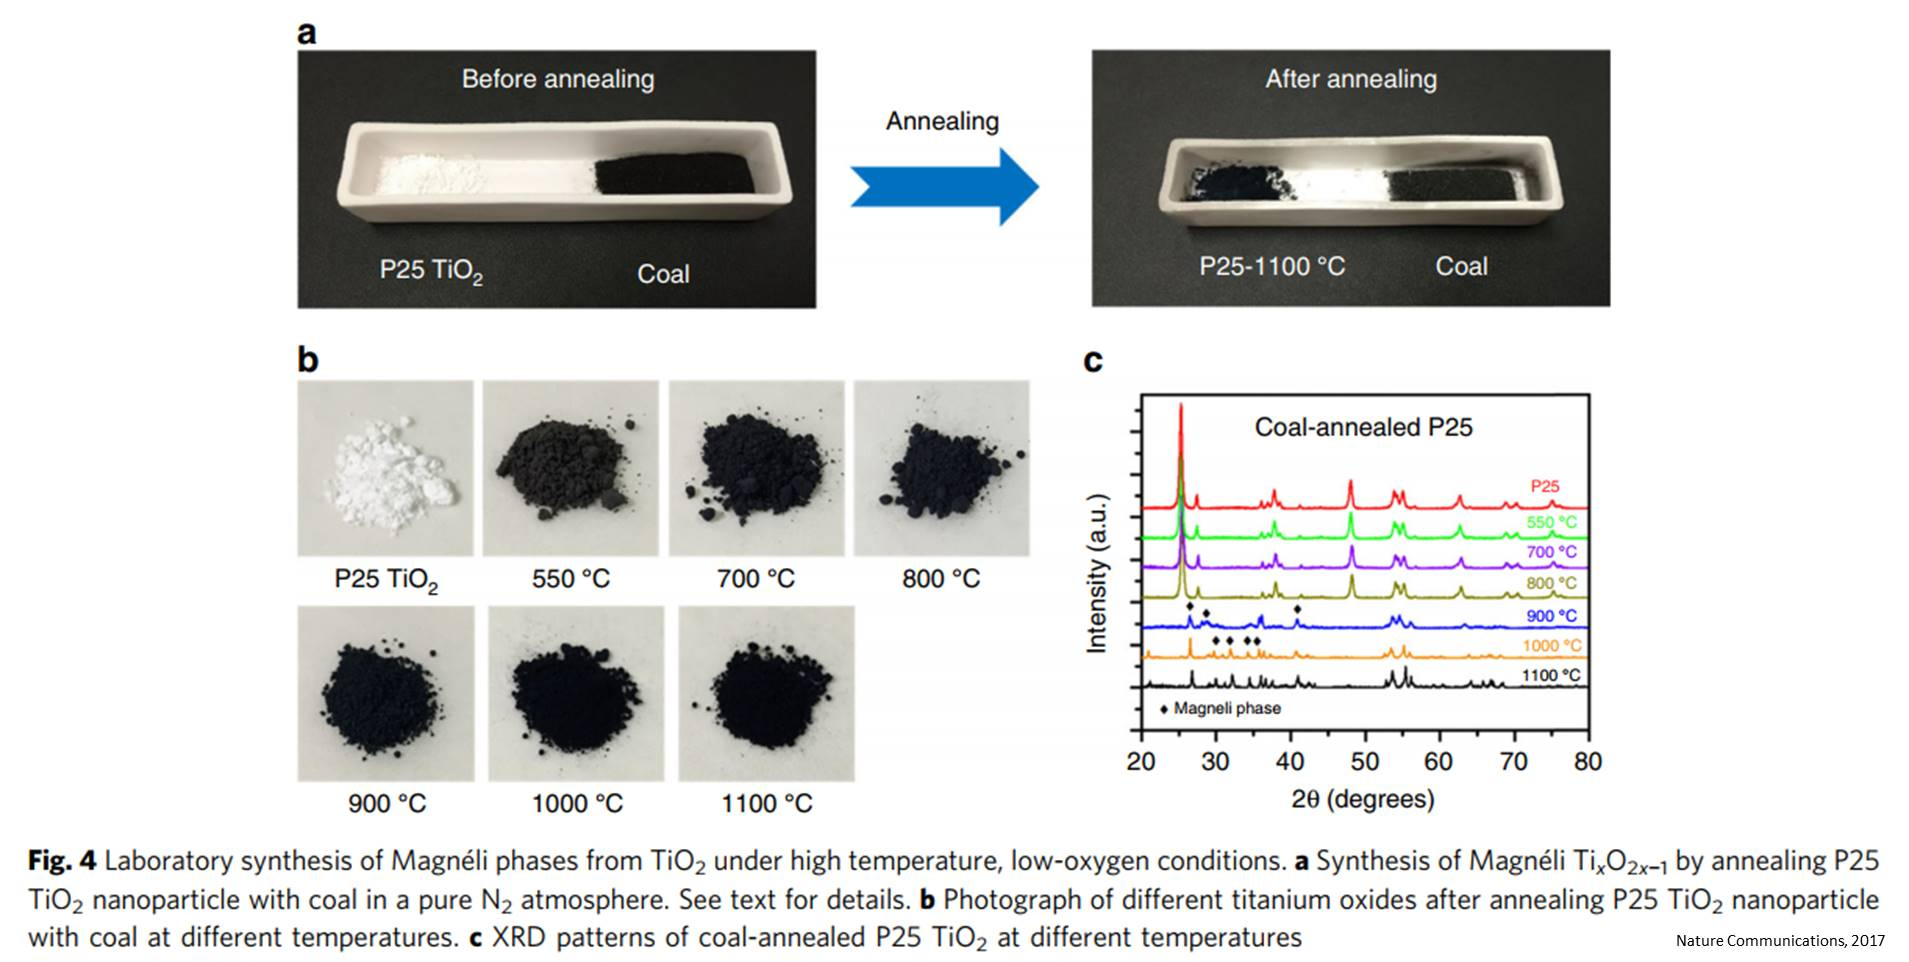 Potentially harmful nanoparticles produced through burning coal!